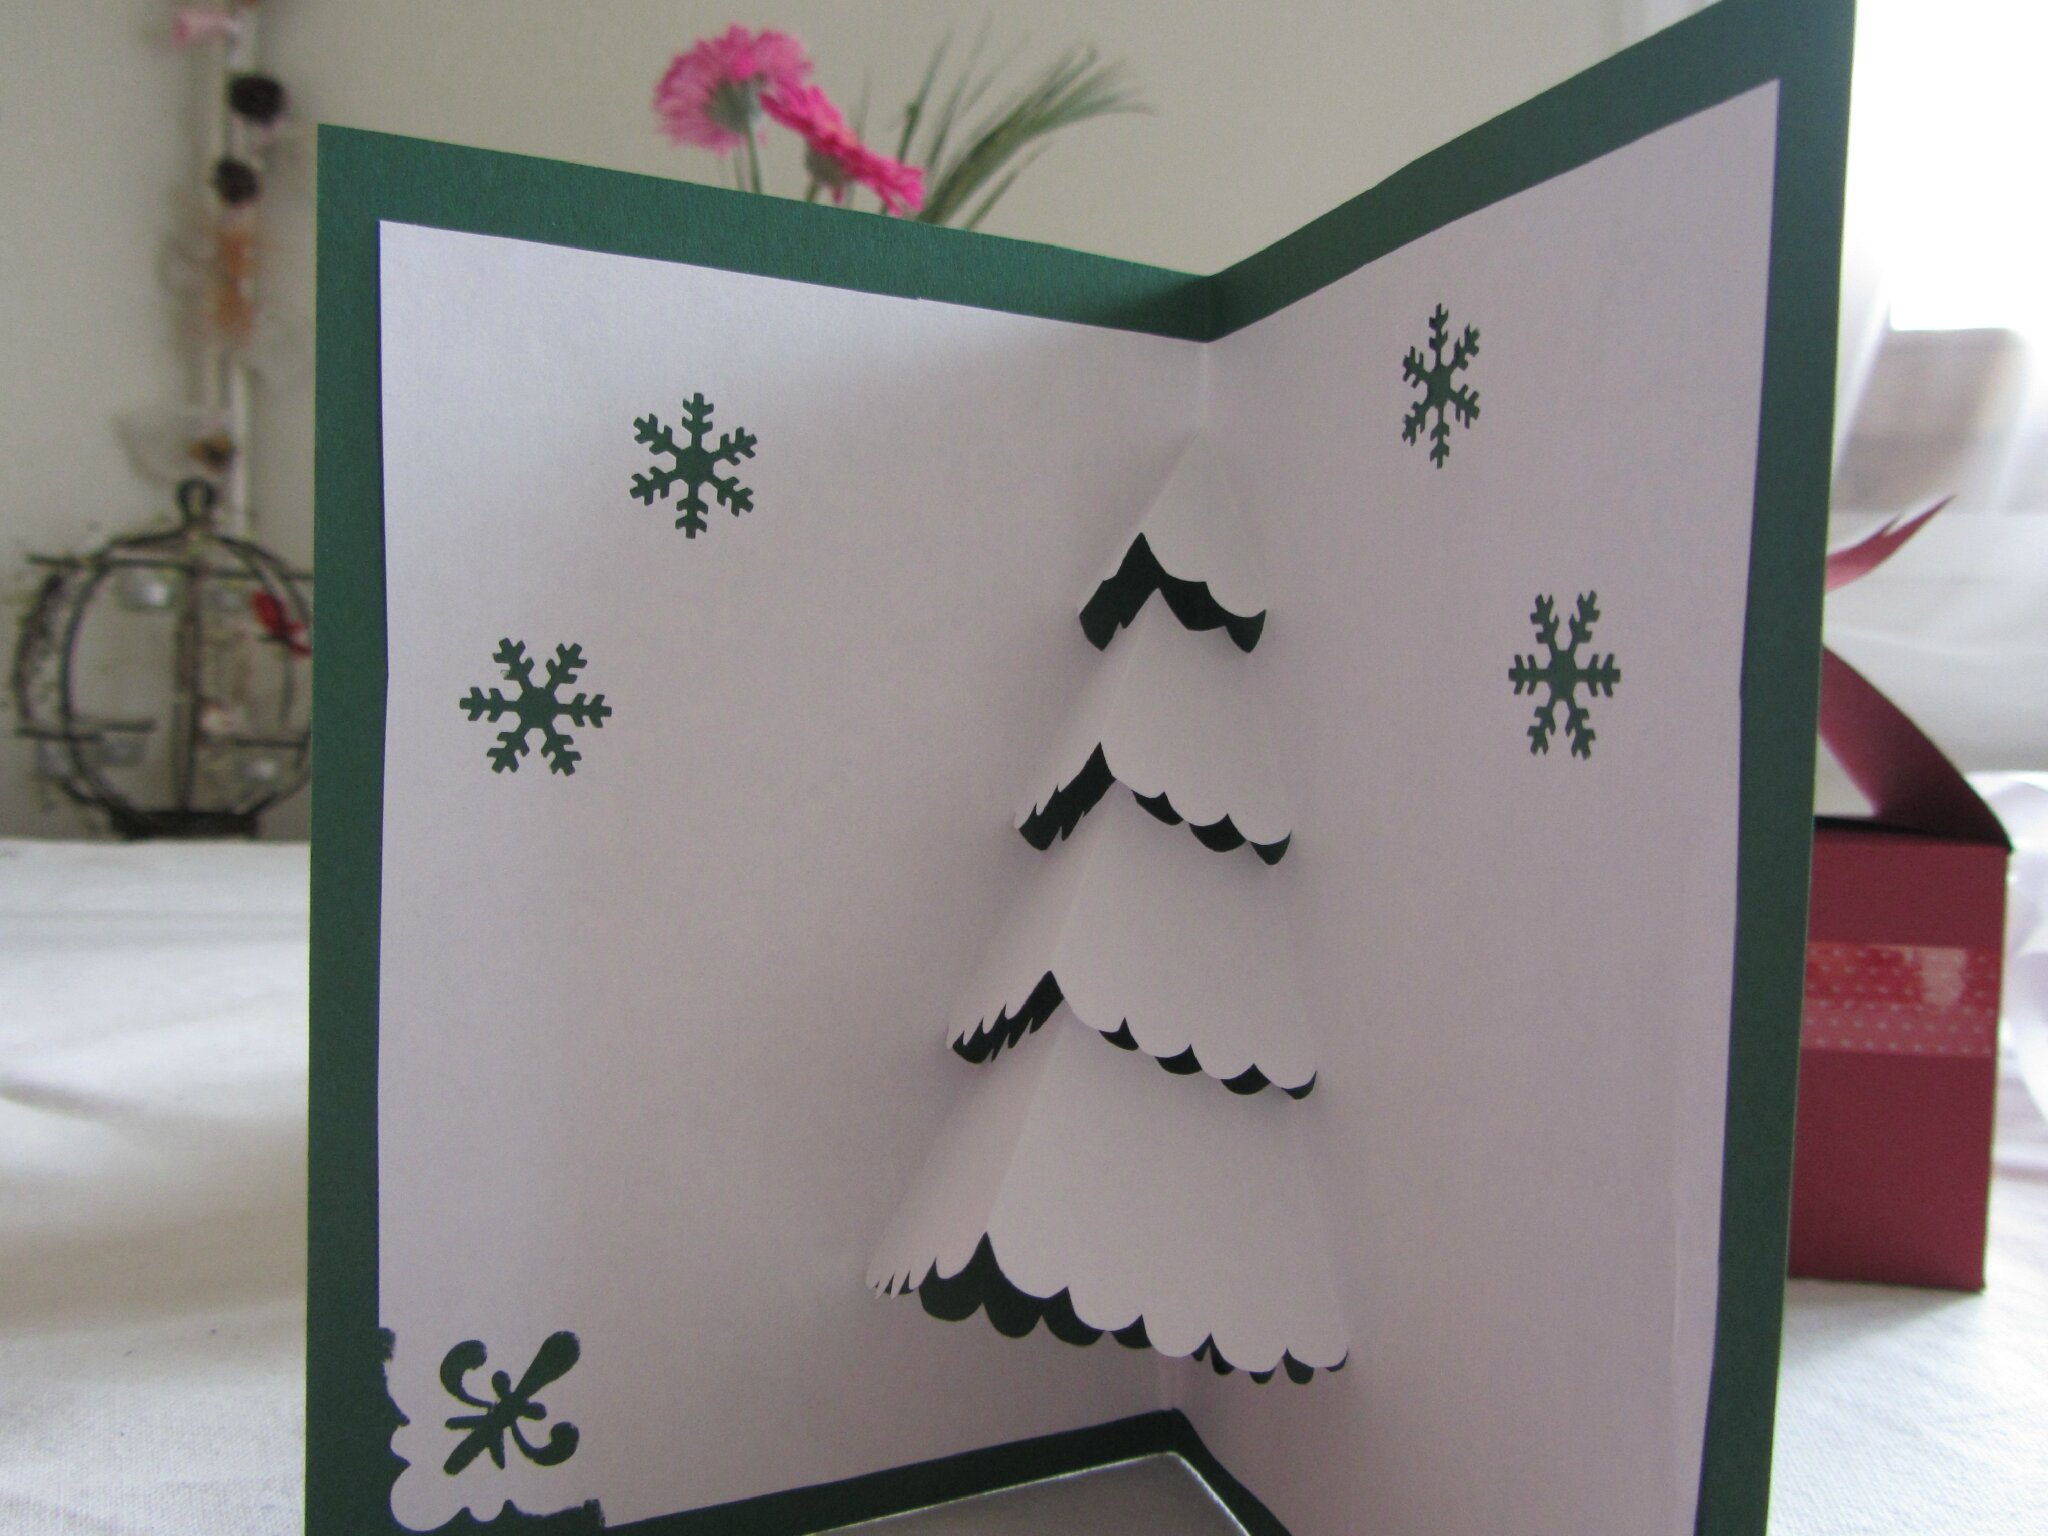 bricolages de no l ii 2 clous 1 pinceau. Black Bedroom Furniture Sets. Home Design Ideas